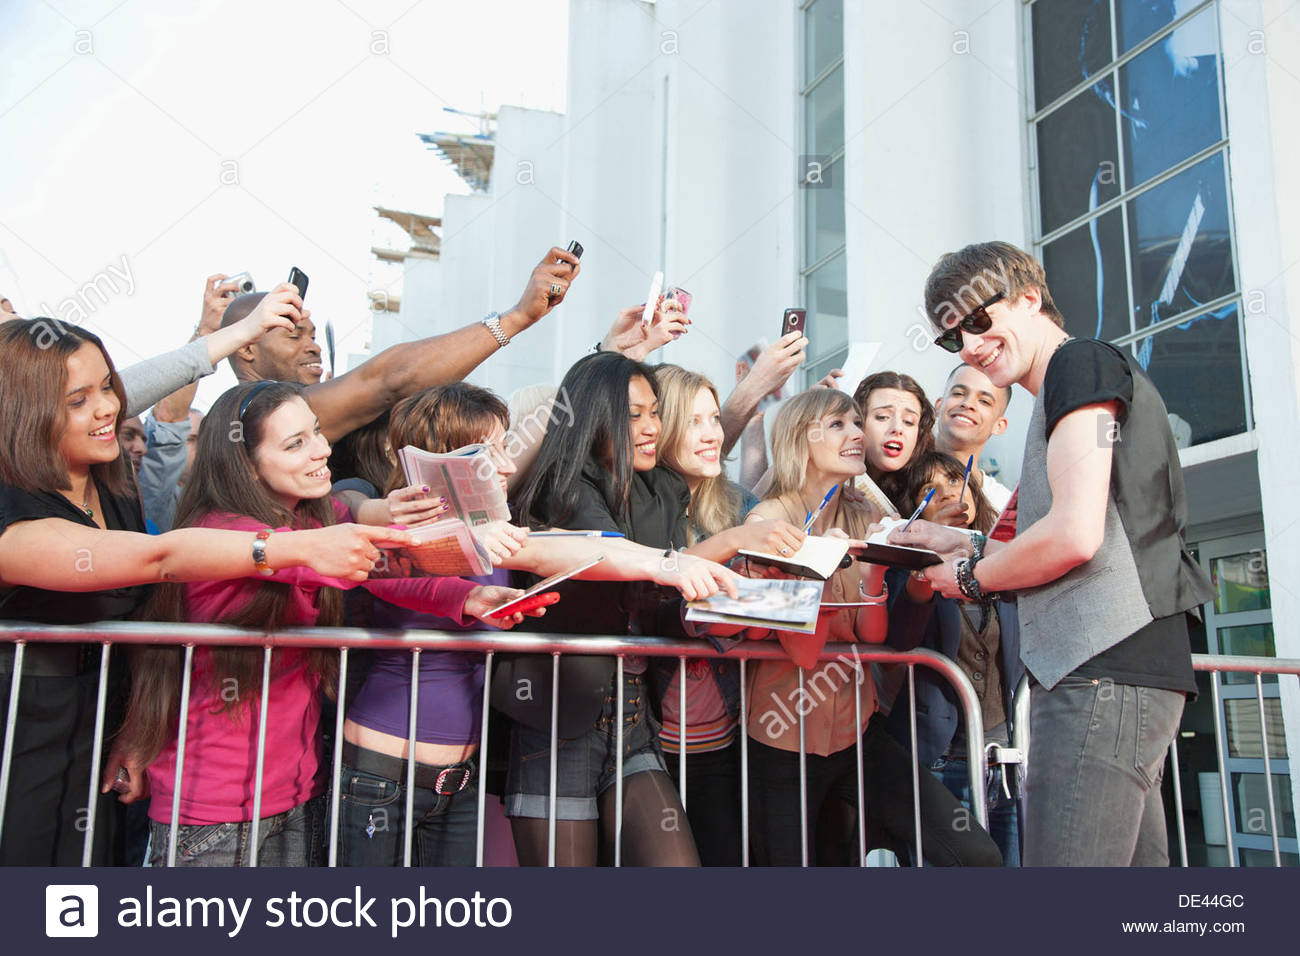 Celebrity signing autographs for fans - Stock Image